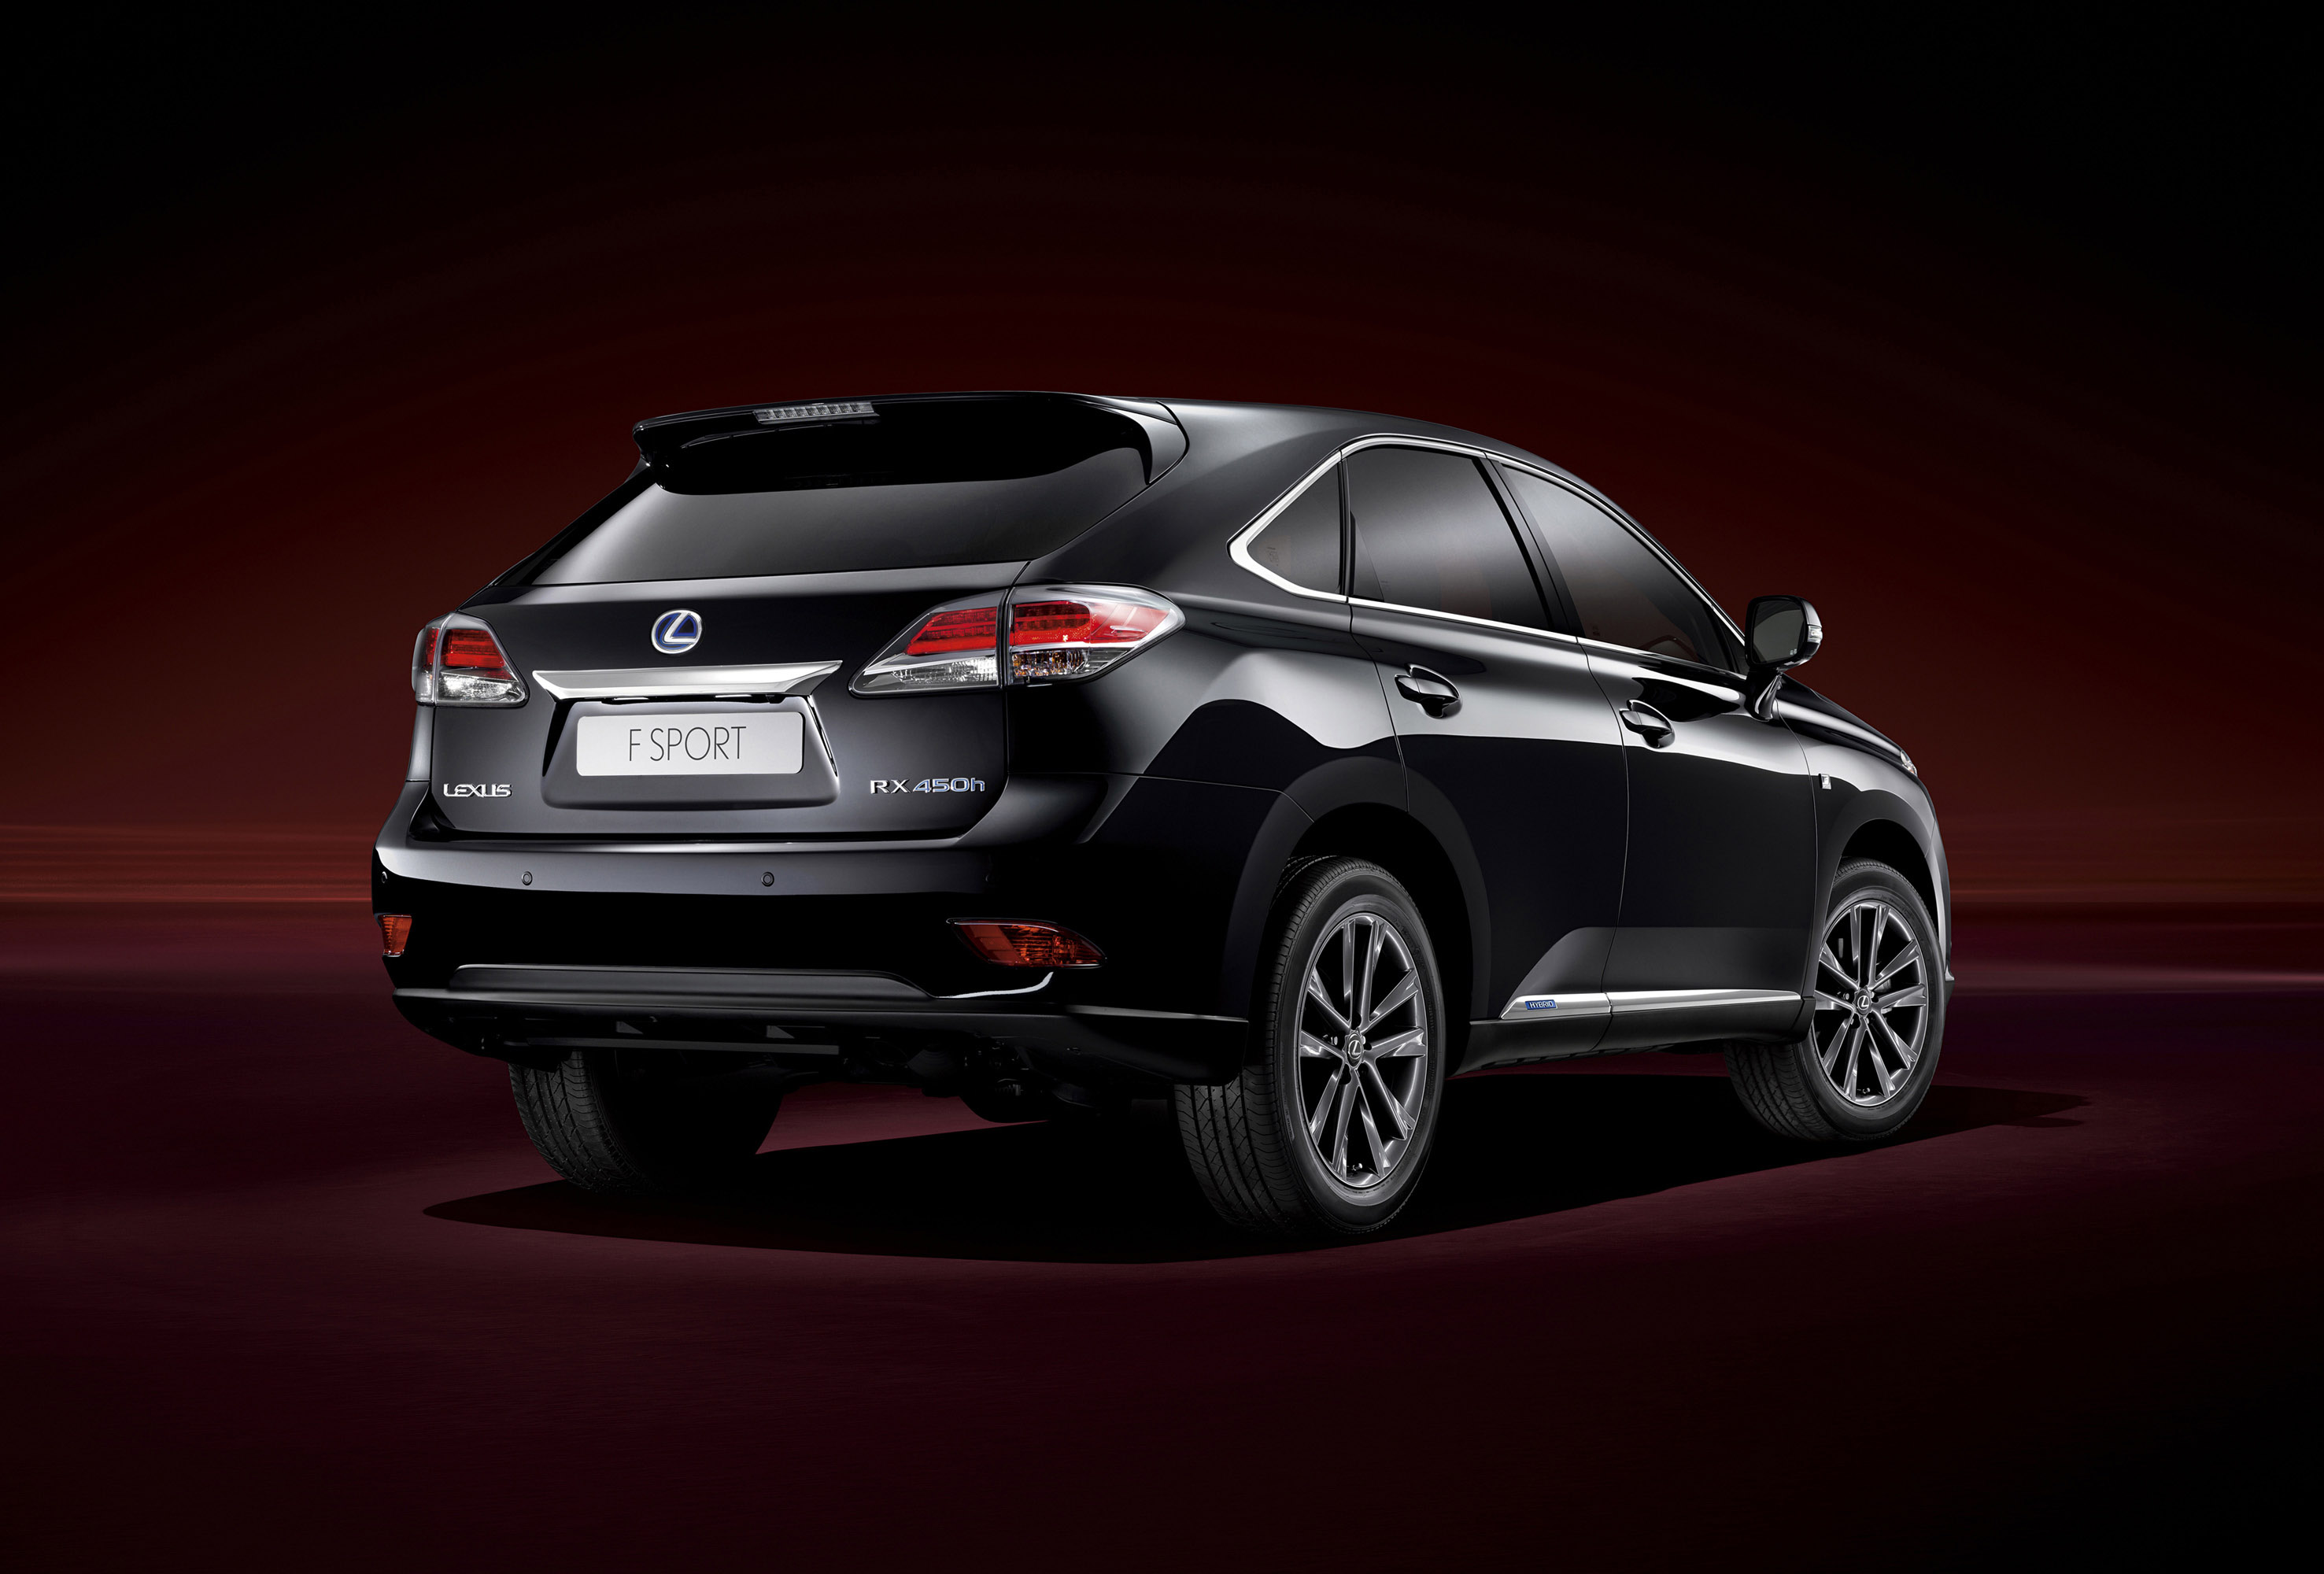 2013 lexus rx 450h range pricing announced. Black Bedroom Furniture Sets. Home Design Ideas